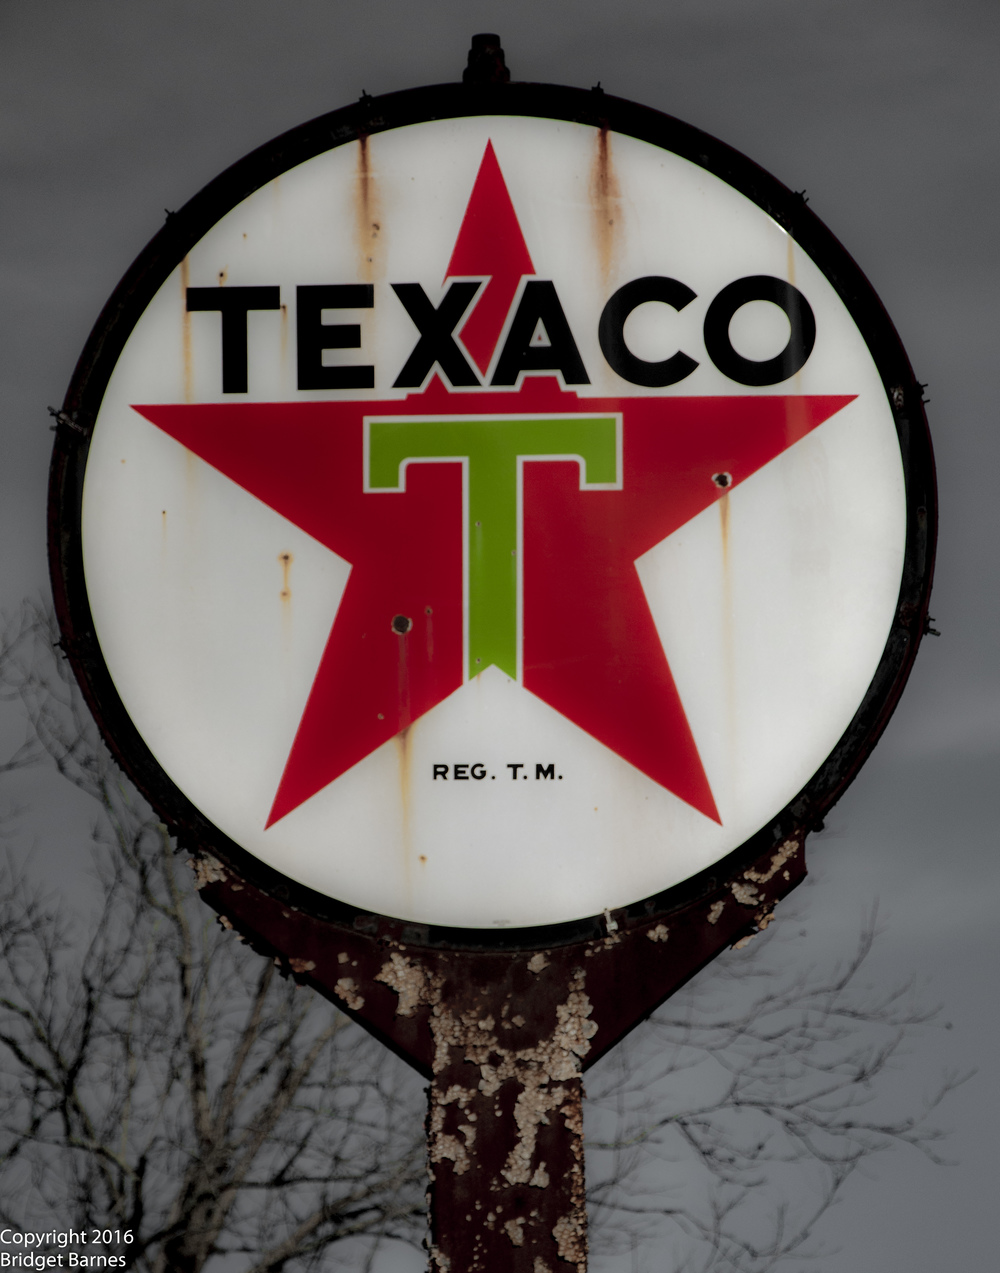 Texaco Sign in Wallis, Texas ©Copyright 2016 Bridget Barnes